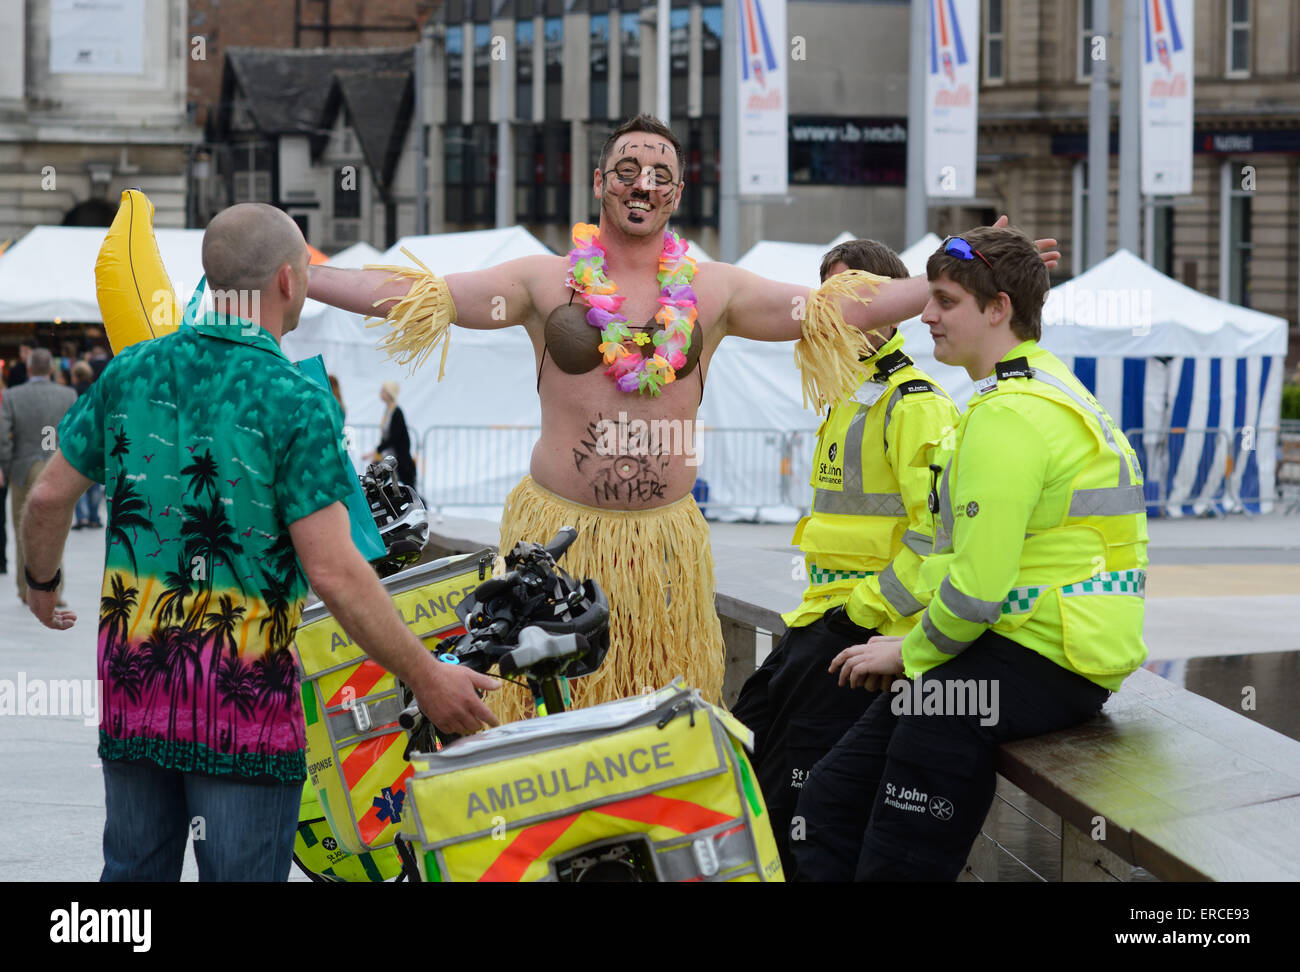 Stag party, Nottingham, England. - Stock Image